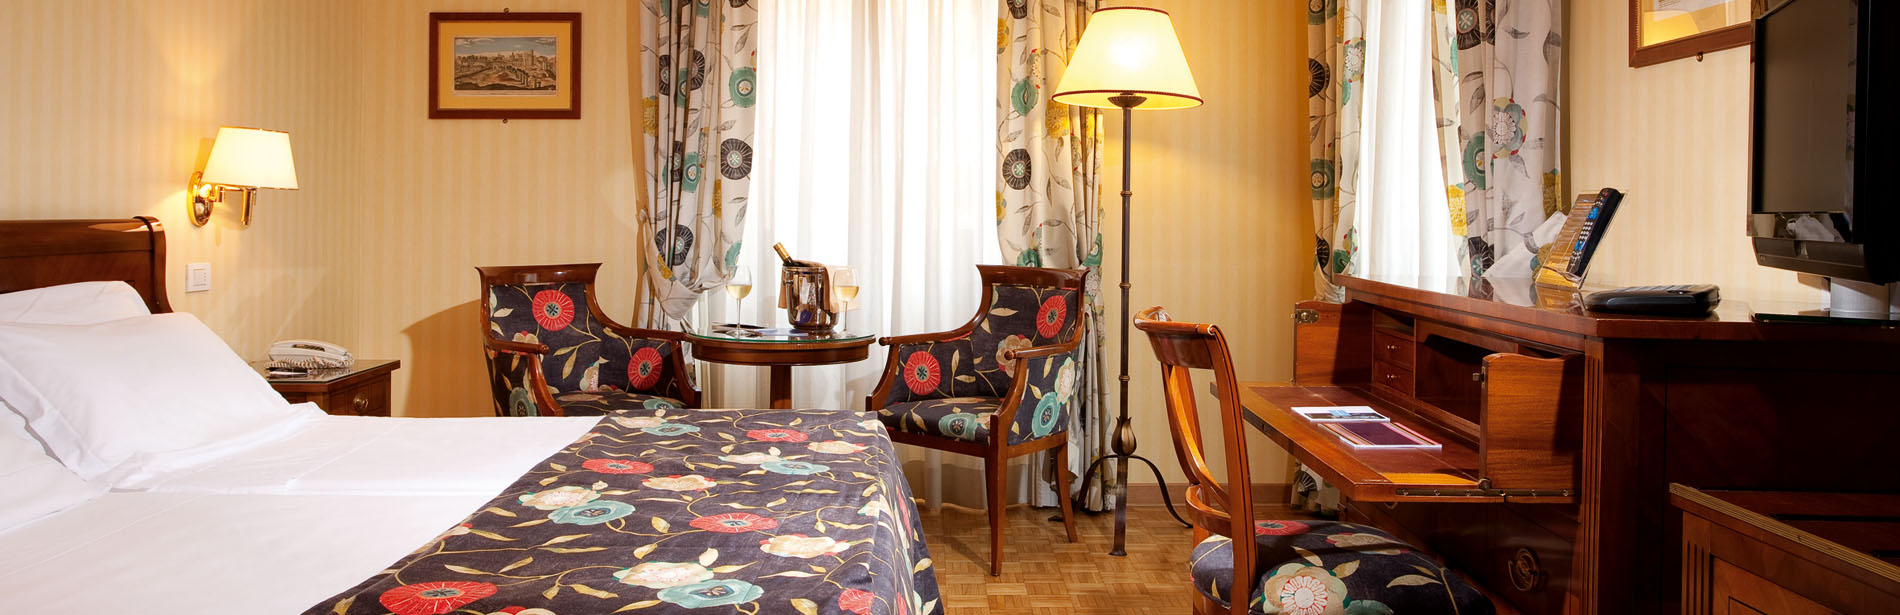 Superior Double Room - Hotel Victoria Roma